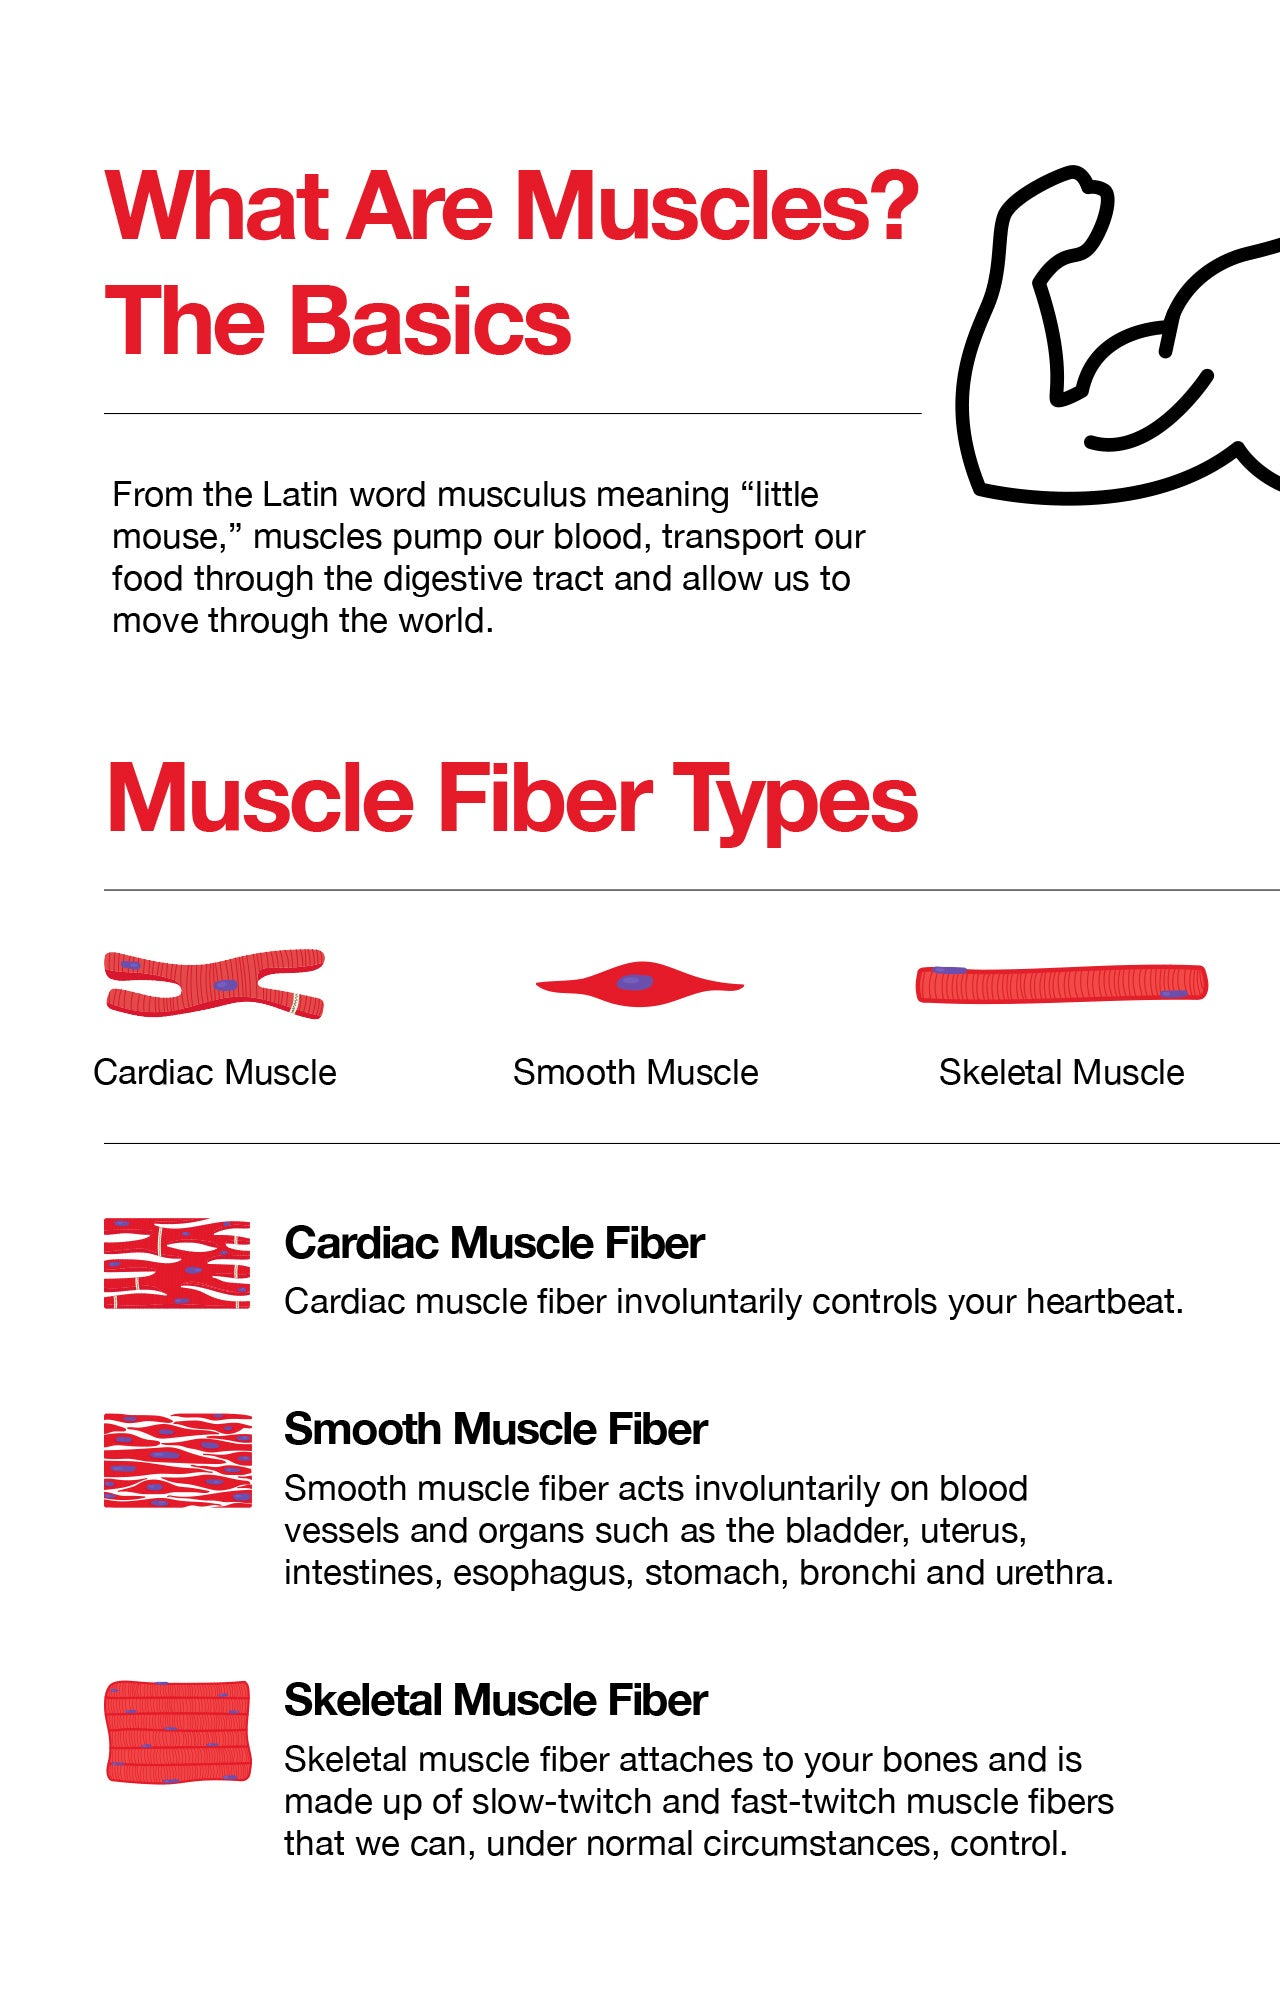 What Are Muscles? The Basics